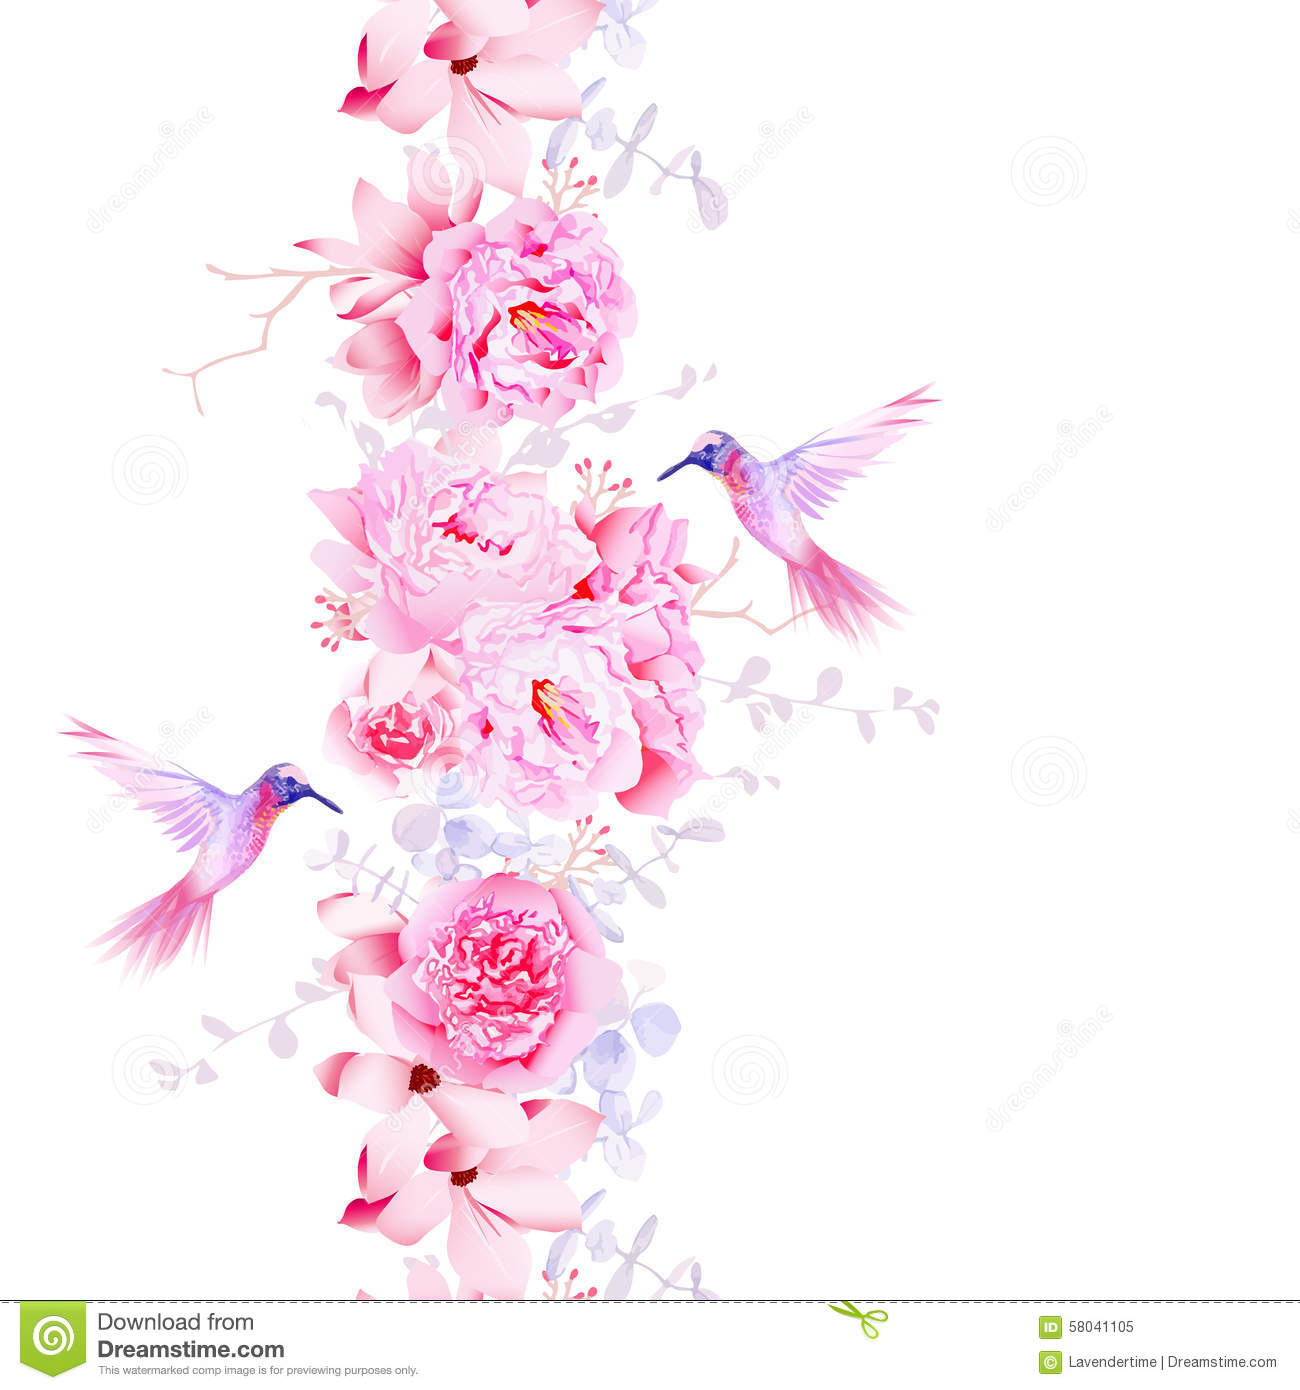 Camelia Stock Illustrations Vecteurs Clipart 1 846 Stock